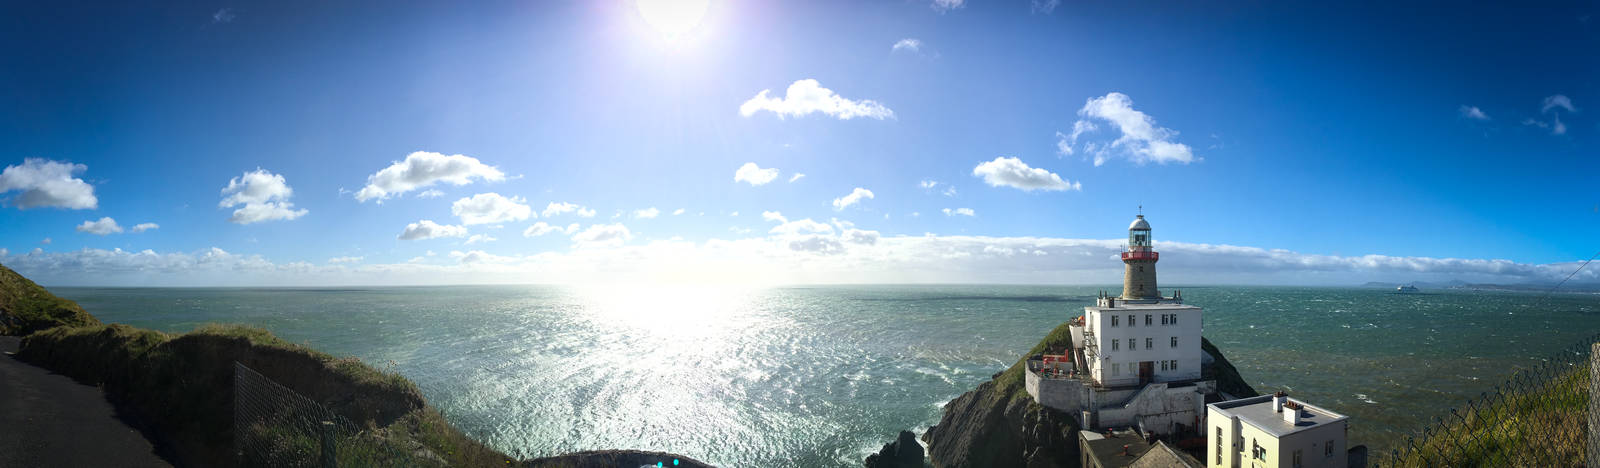 Panorama of Baily Lighthouse and the Irish Sea